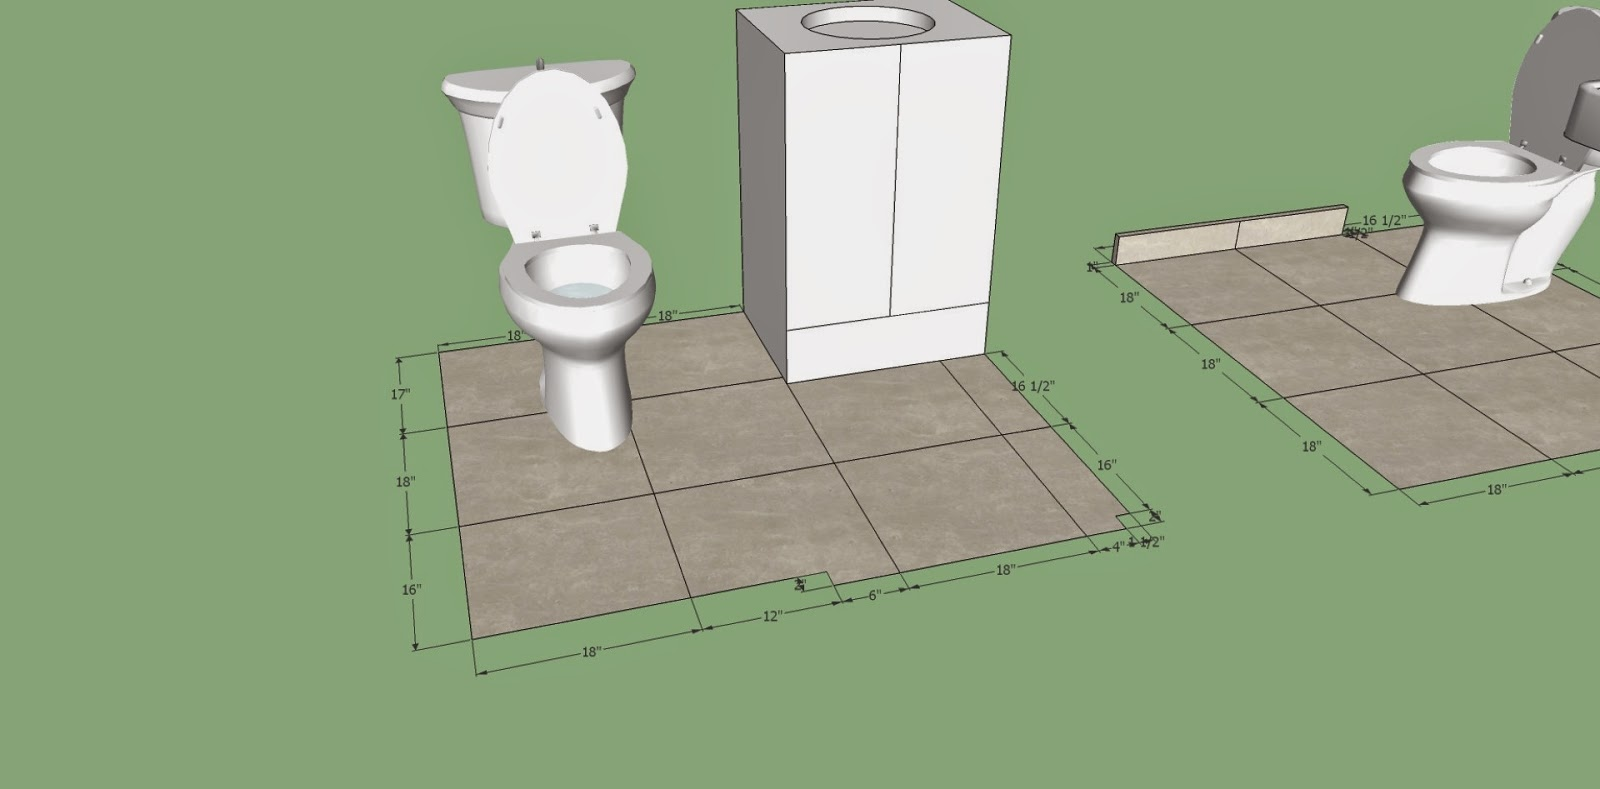 Bathroom remodels part 1 materials and planning bathroom tile google sketchup drawing measure dailygadgetfo Choice Image